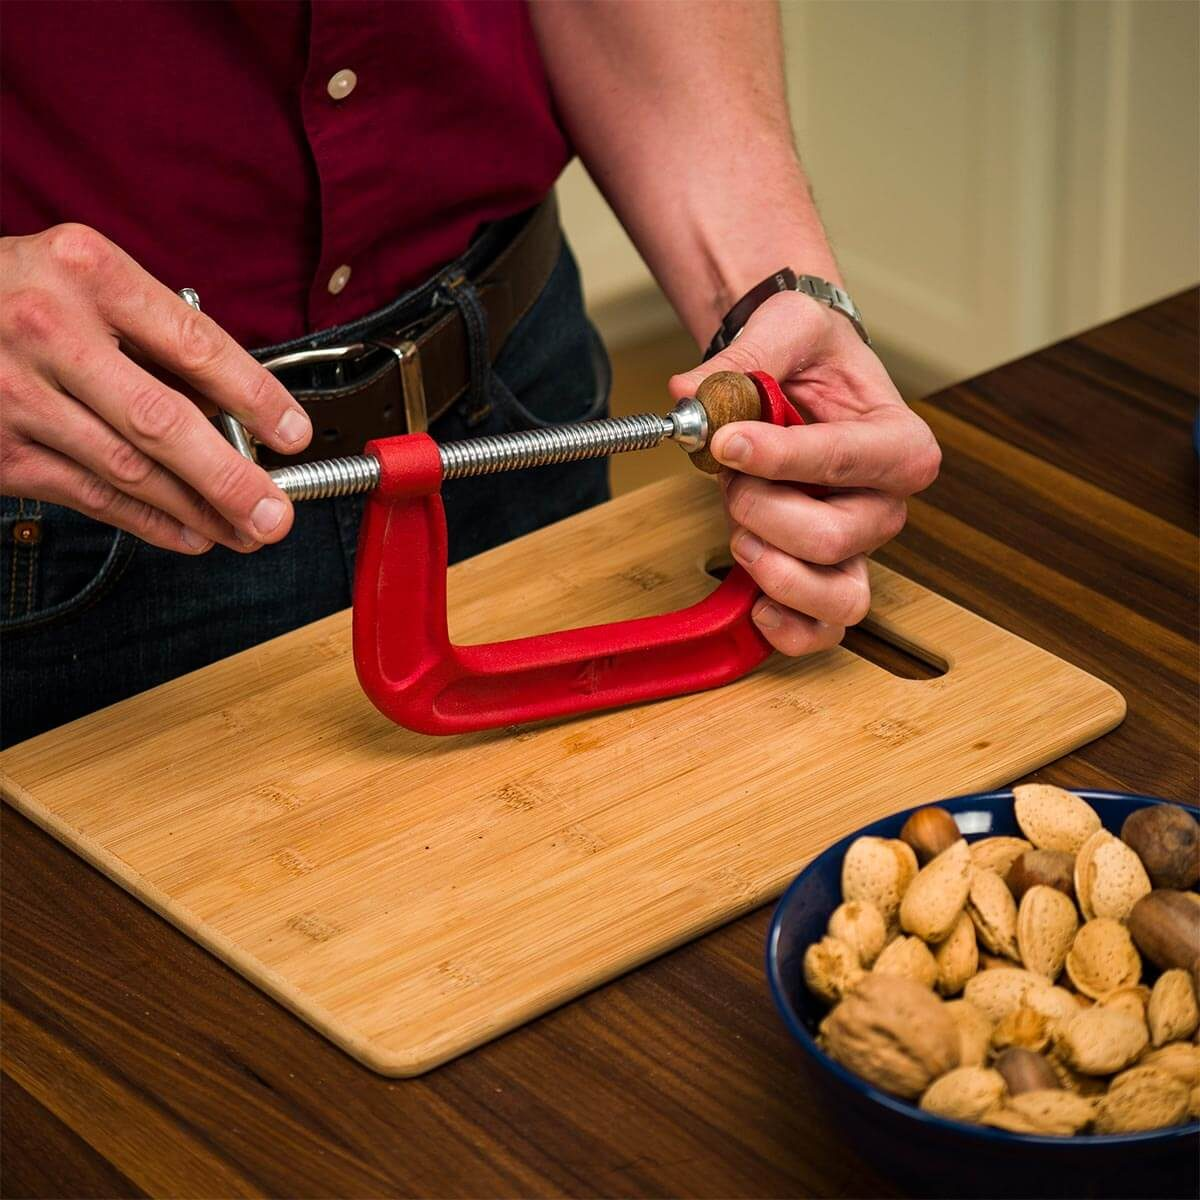 crack nuts with a C-clamp